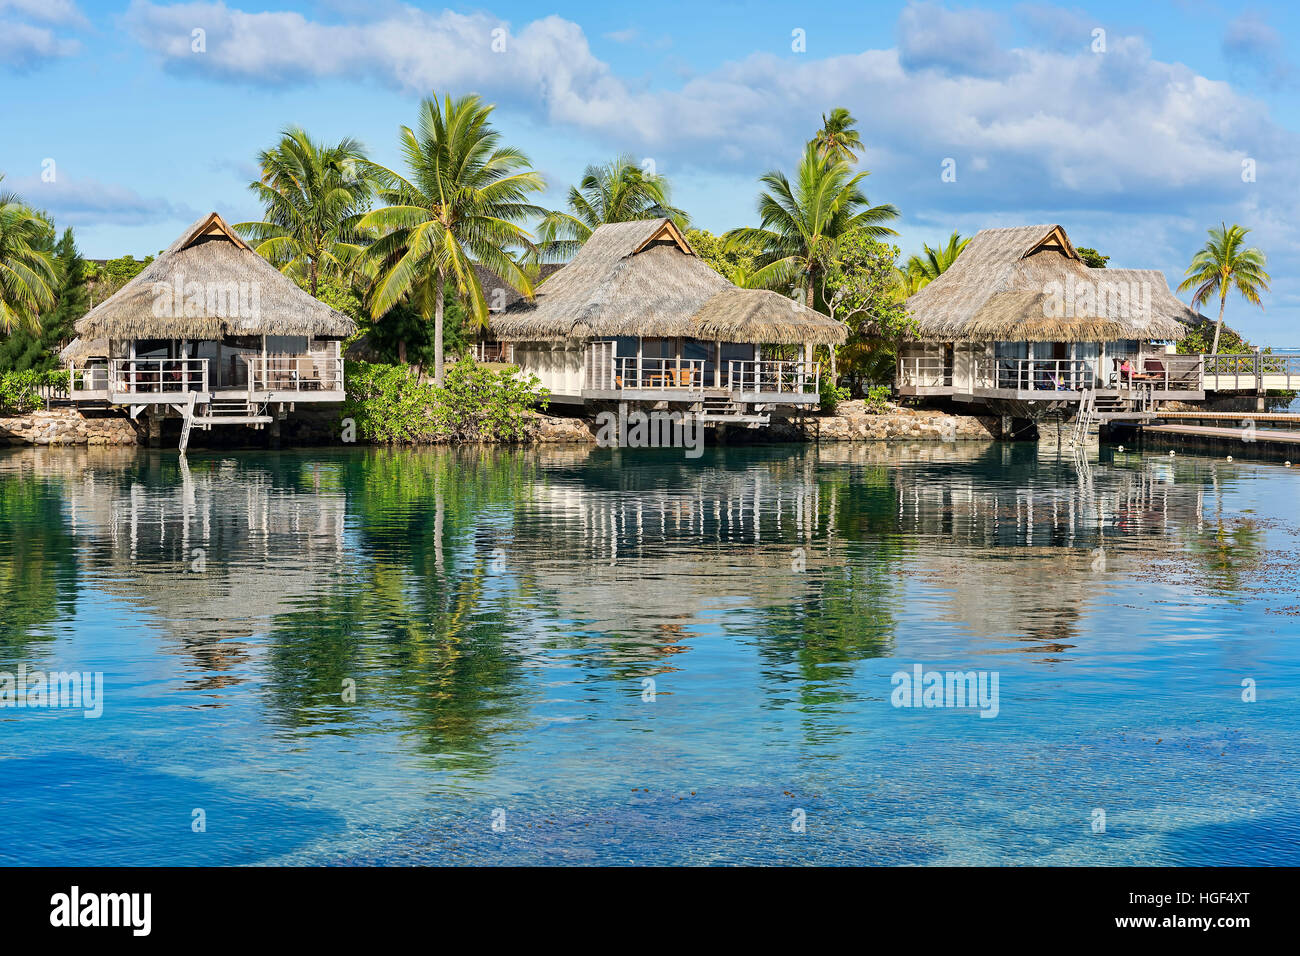 Holiday resort with bungalows, Moorea, French Polynesia - Stock Image